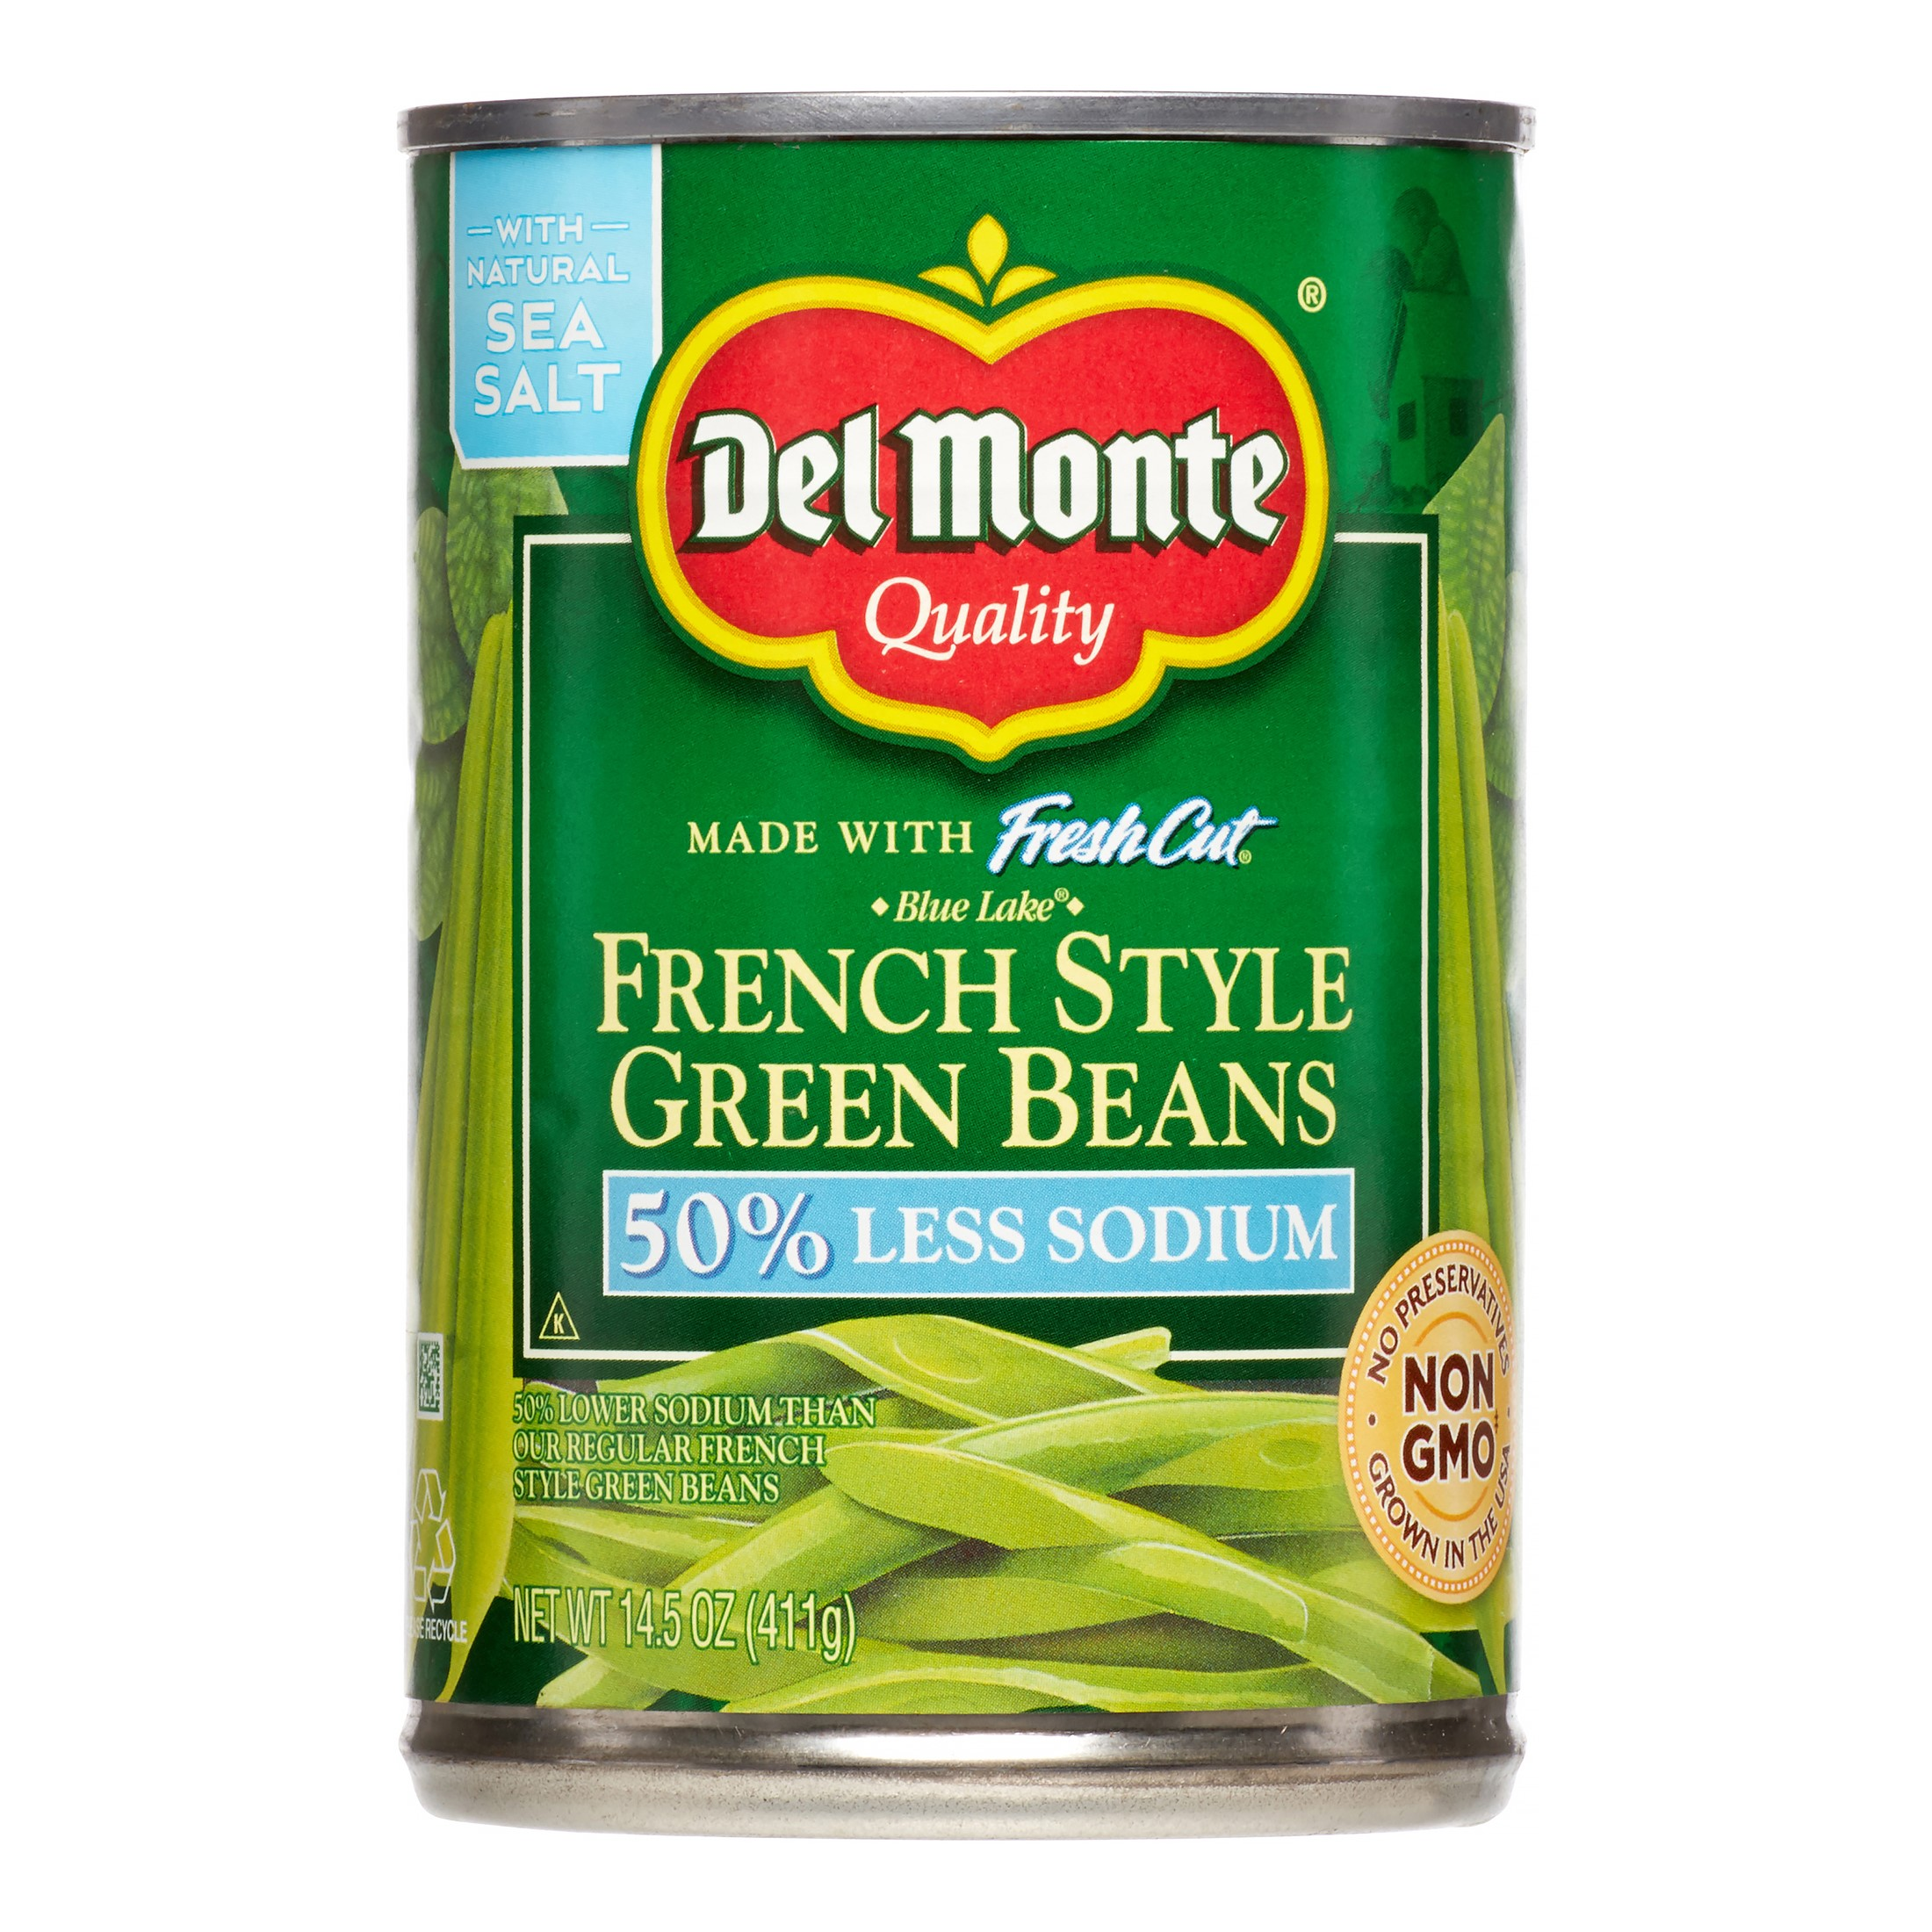 Del Monte Fresh Cut French Style Green Beans, 50% Less Sodium, 14.5 Oz